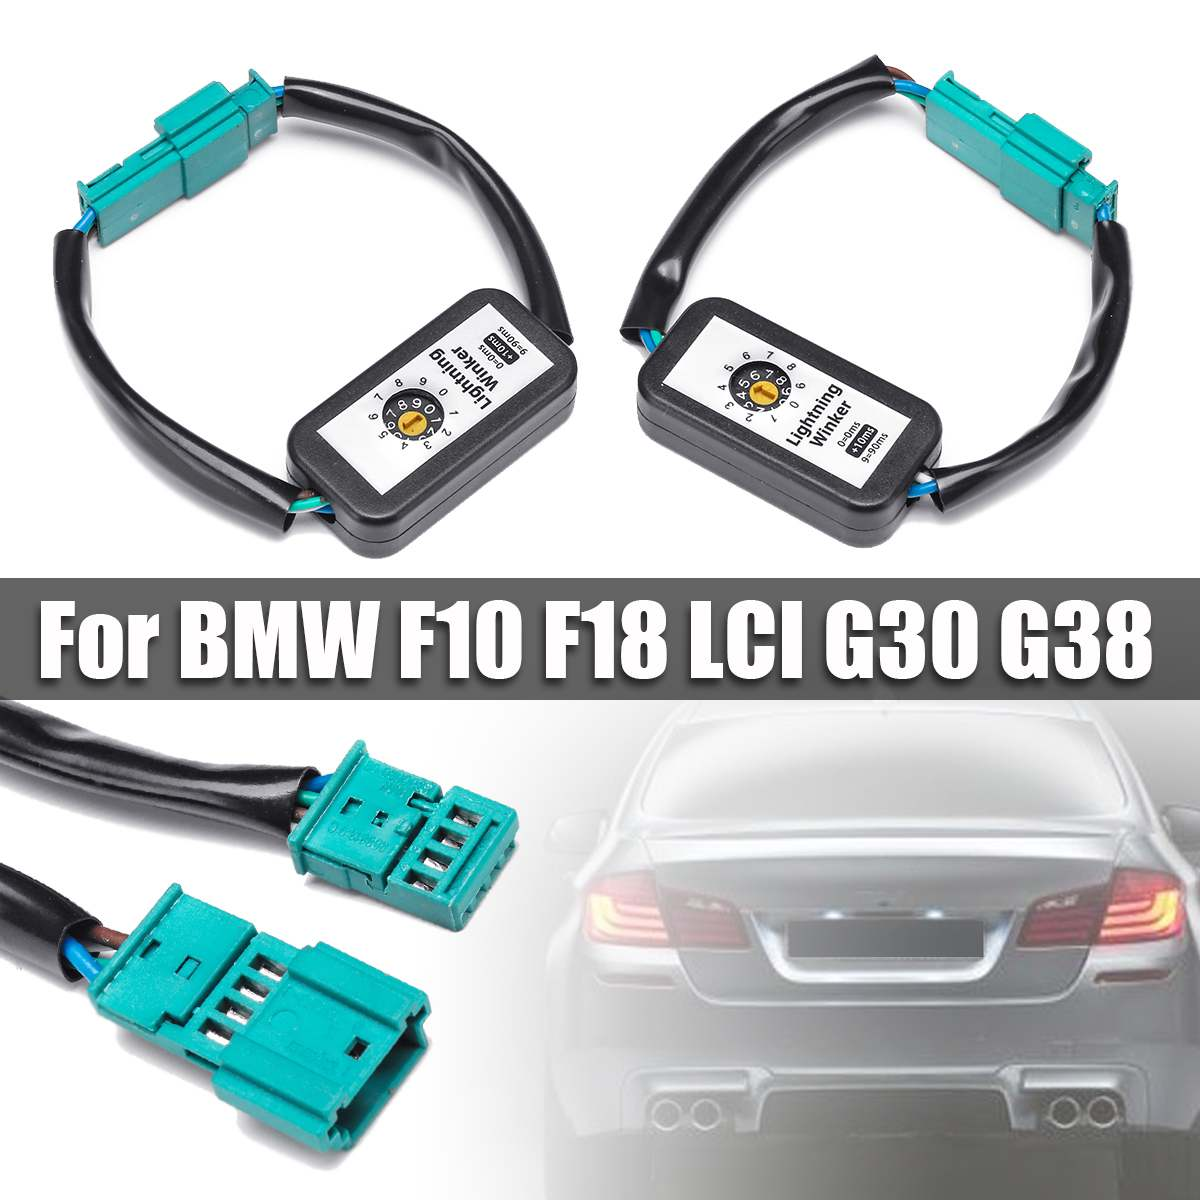 2PCS Dynamic Add-on Module Taillight Cable Wire For Turn Signal Indicator LED Taillight For BMW F10 F18 LCI G30 G38  2009-2016